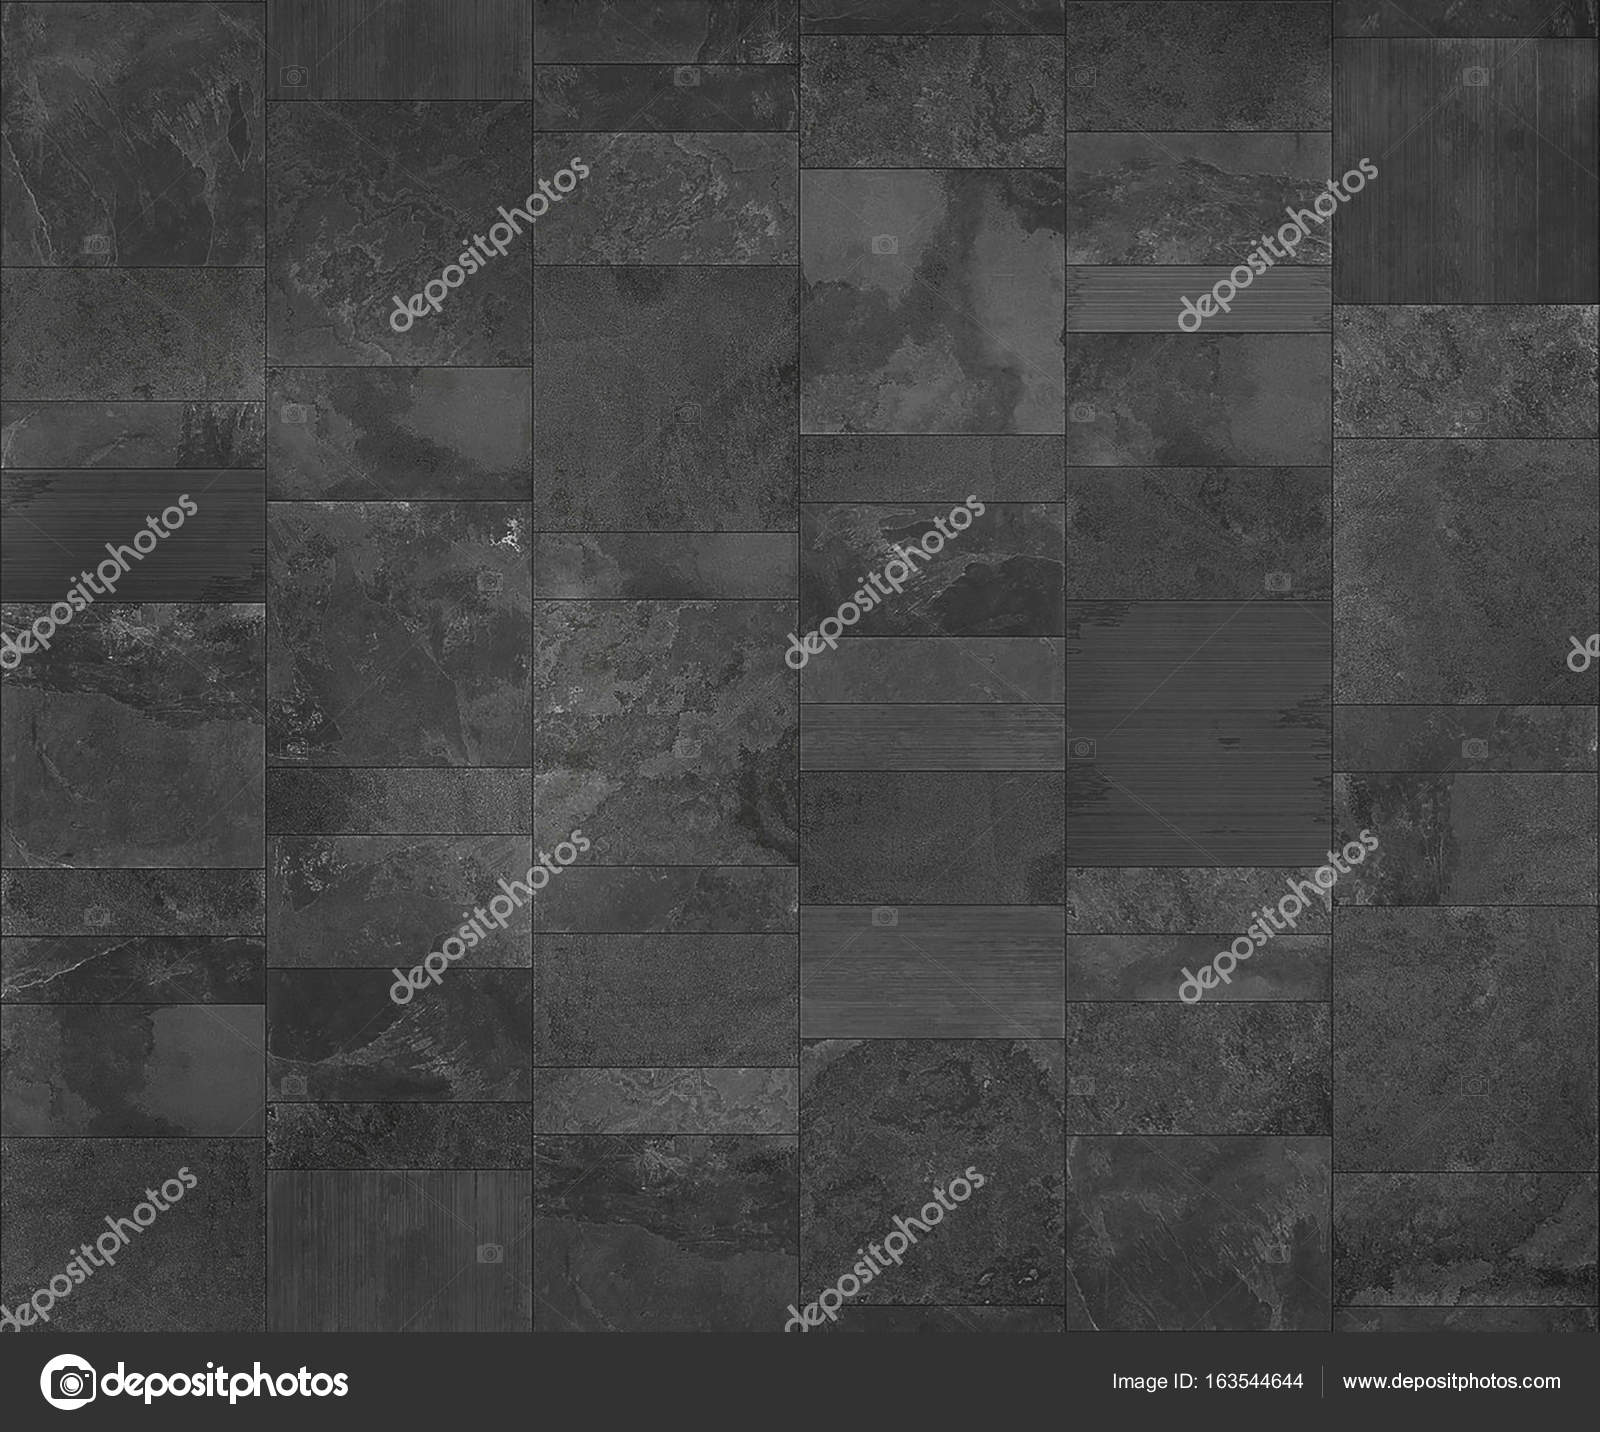 Slate tile ceramic seamless texture dark gray map for 3d graphic covering tile lay texture for designers and printmaking photo by threedicube dailygadgetfo Choice Image